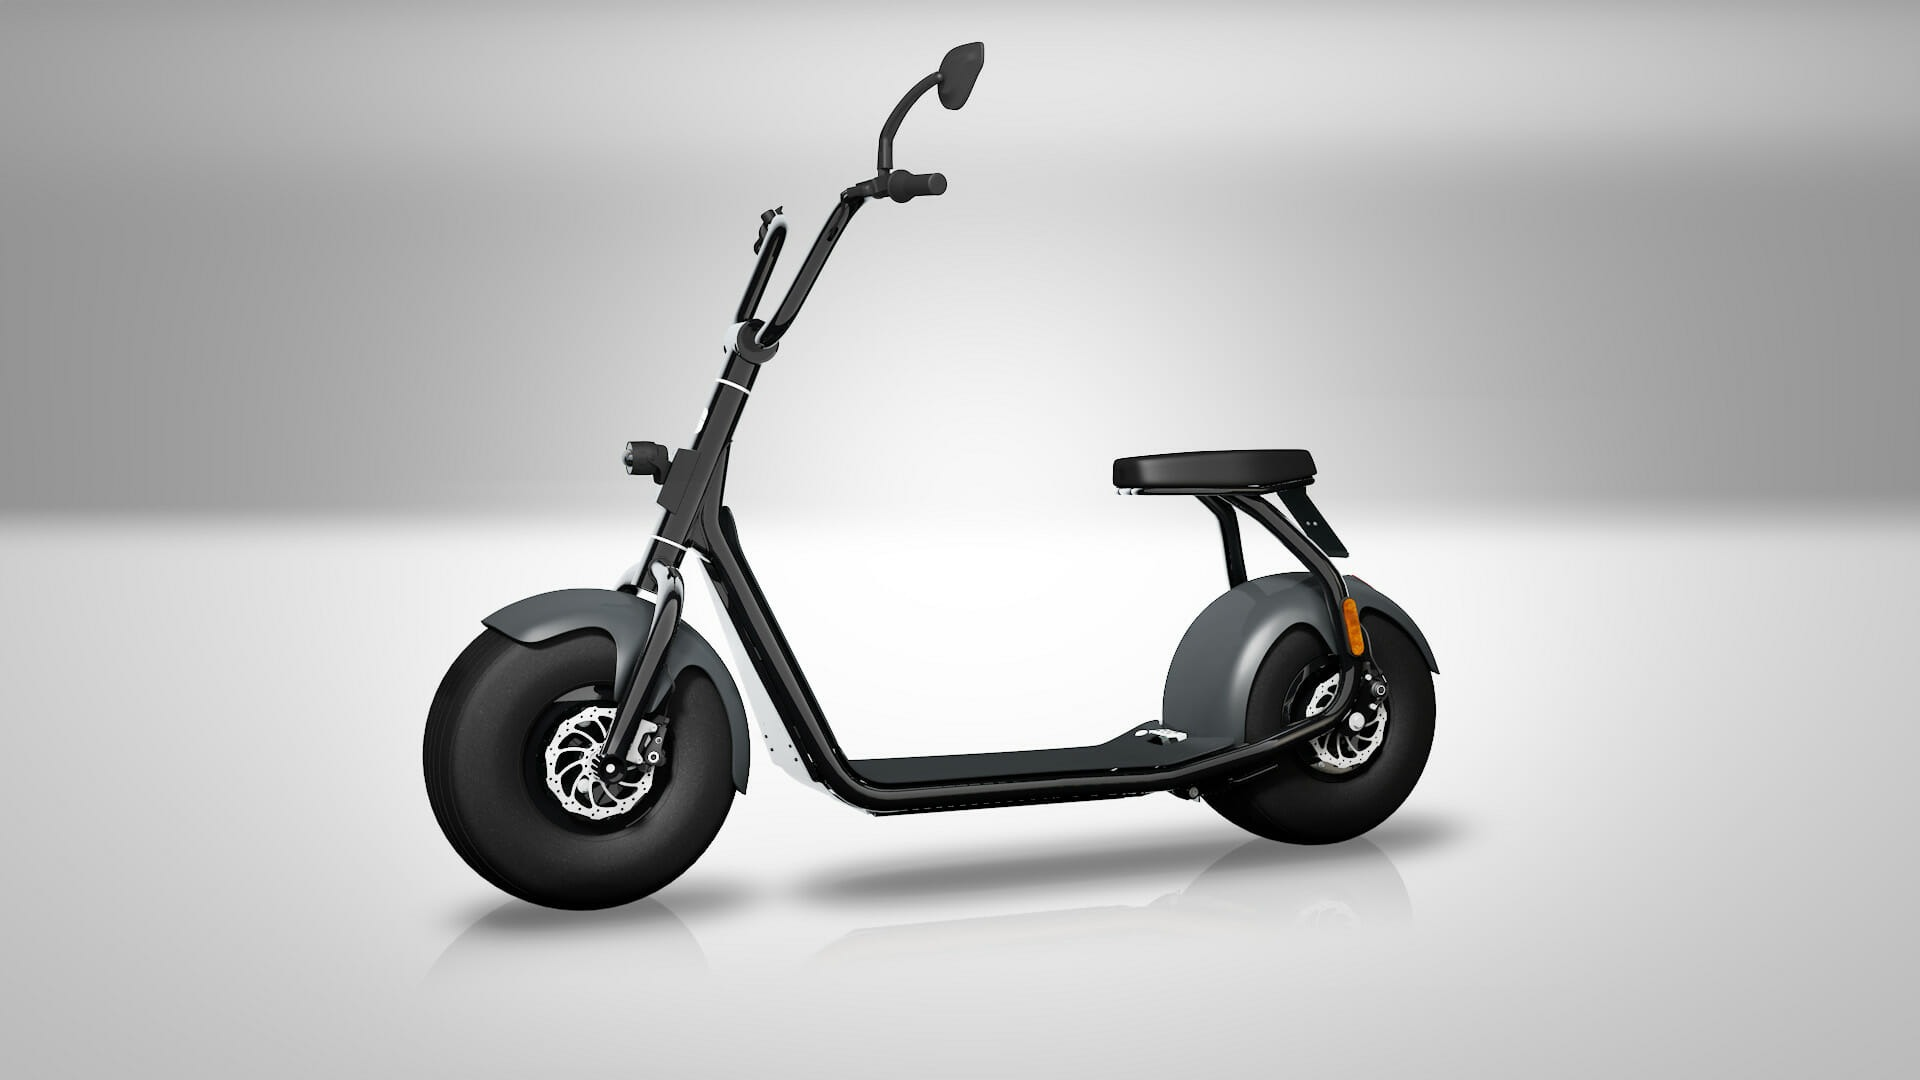 Used 2018 Scrooser ELECTRIC SCOOTER SELF BALANCED / 15.5 MPH / 34MI RANGE - CHOOSE YOUR COLOR for sale Sold at Formula Imports in Charlotte NC 28227 30